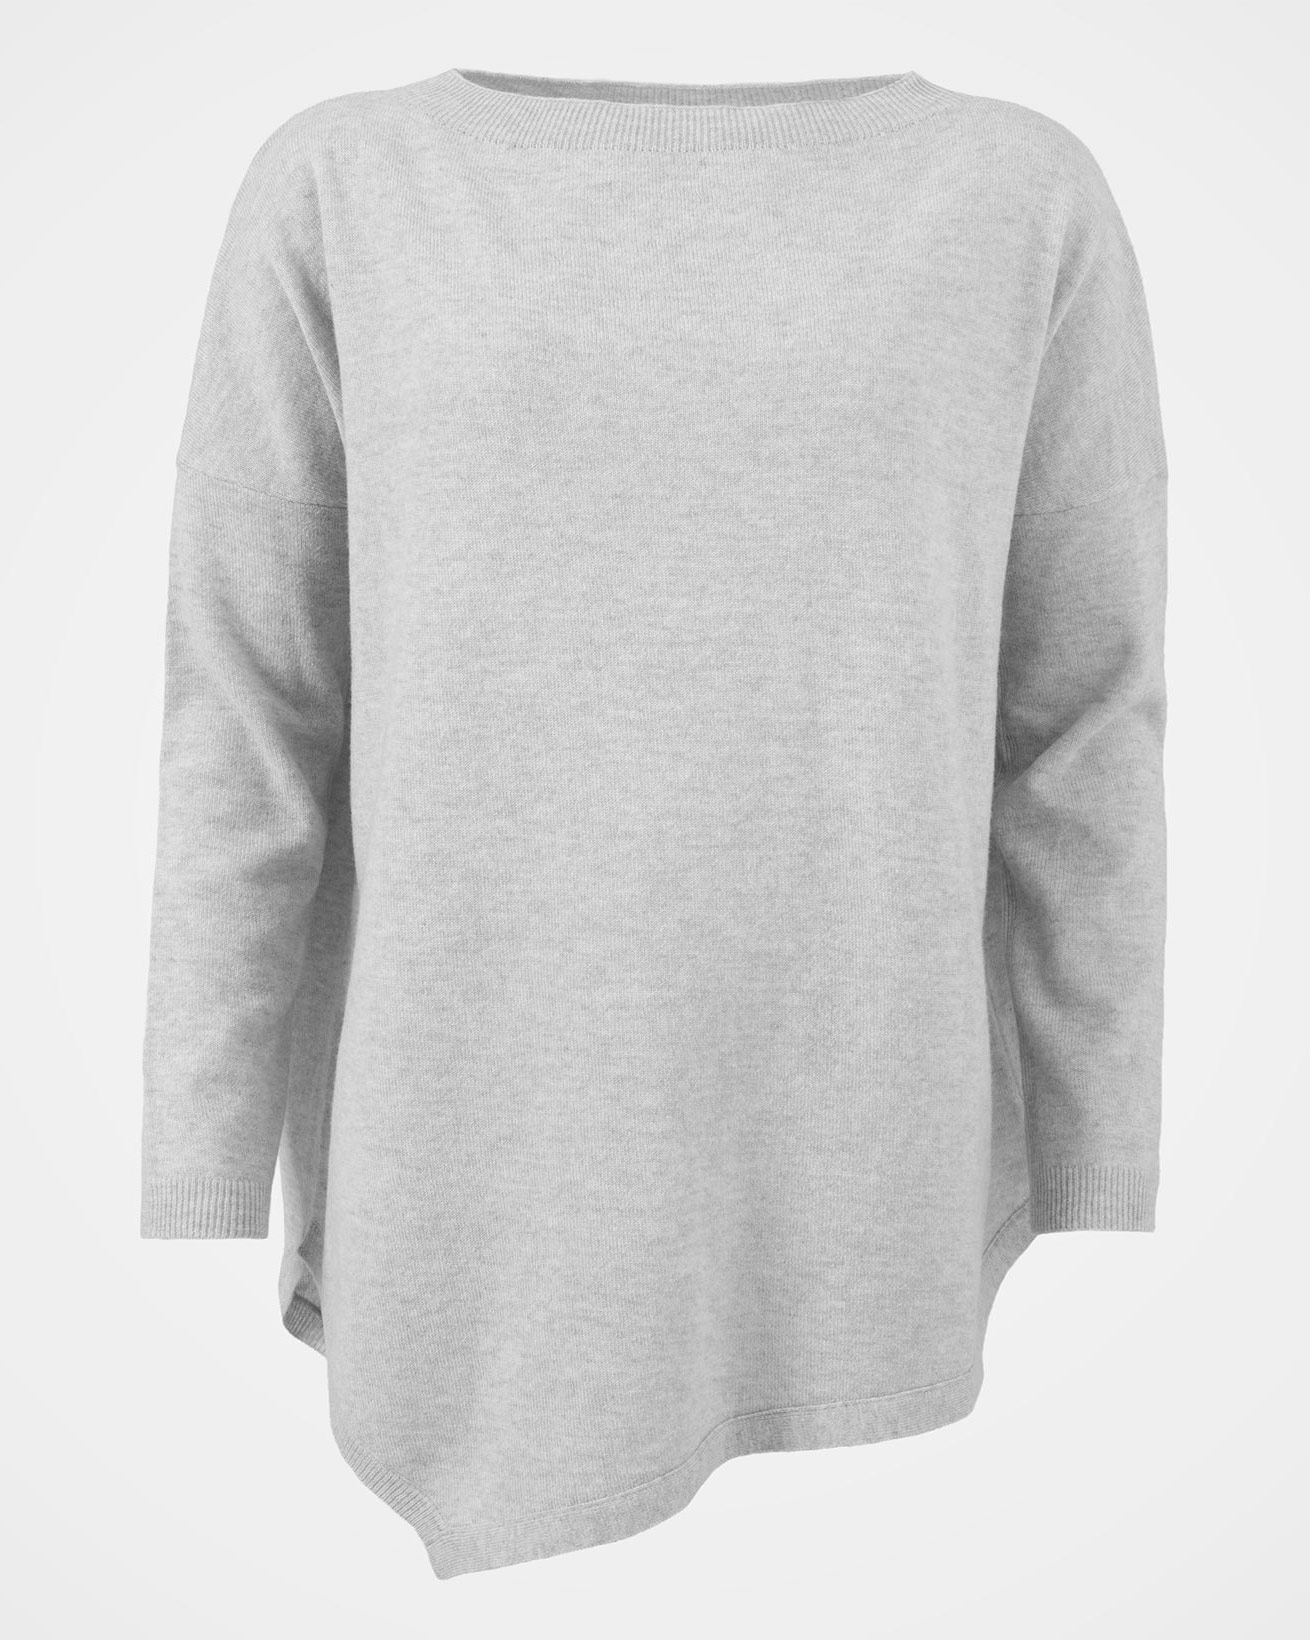 Geelong Asymetric Tunic - Size Small - Pearl Grey - 1546